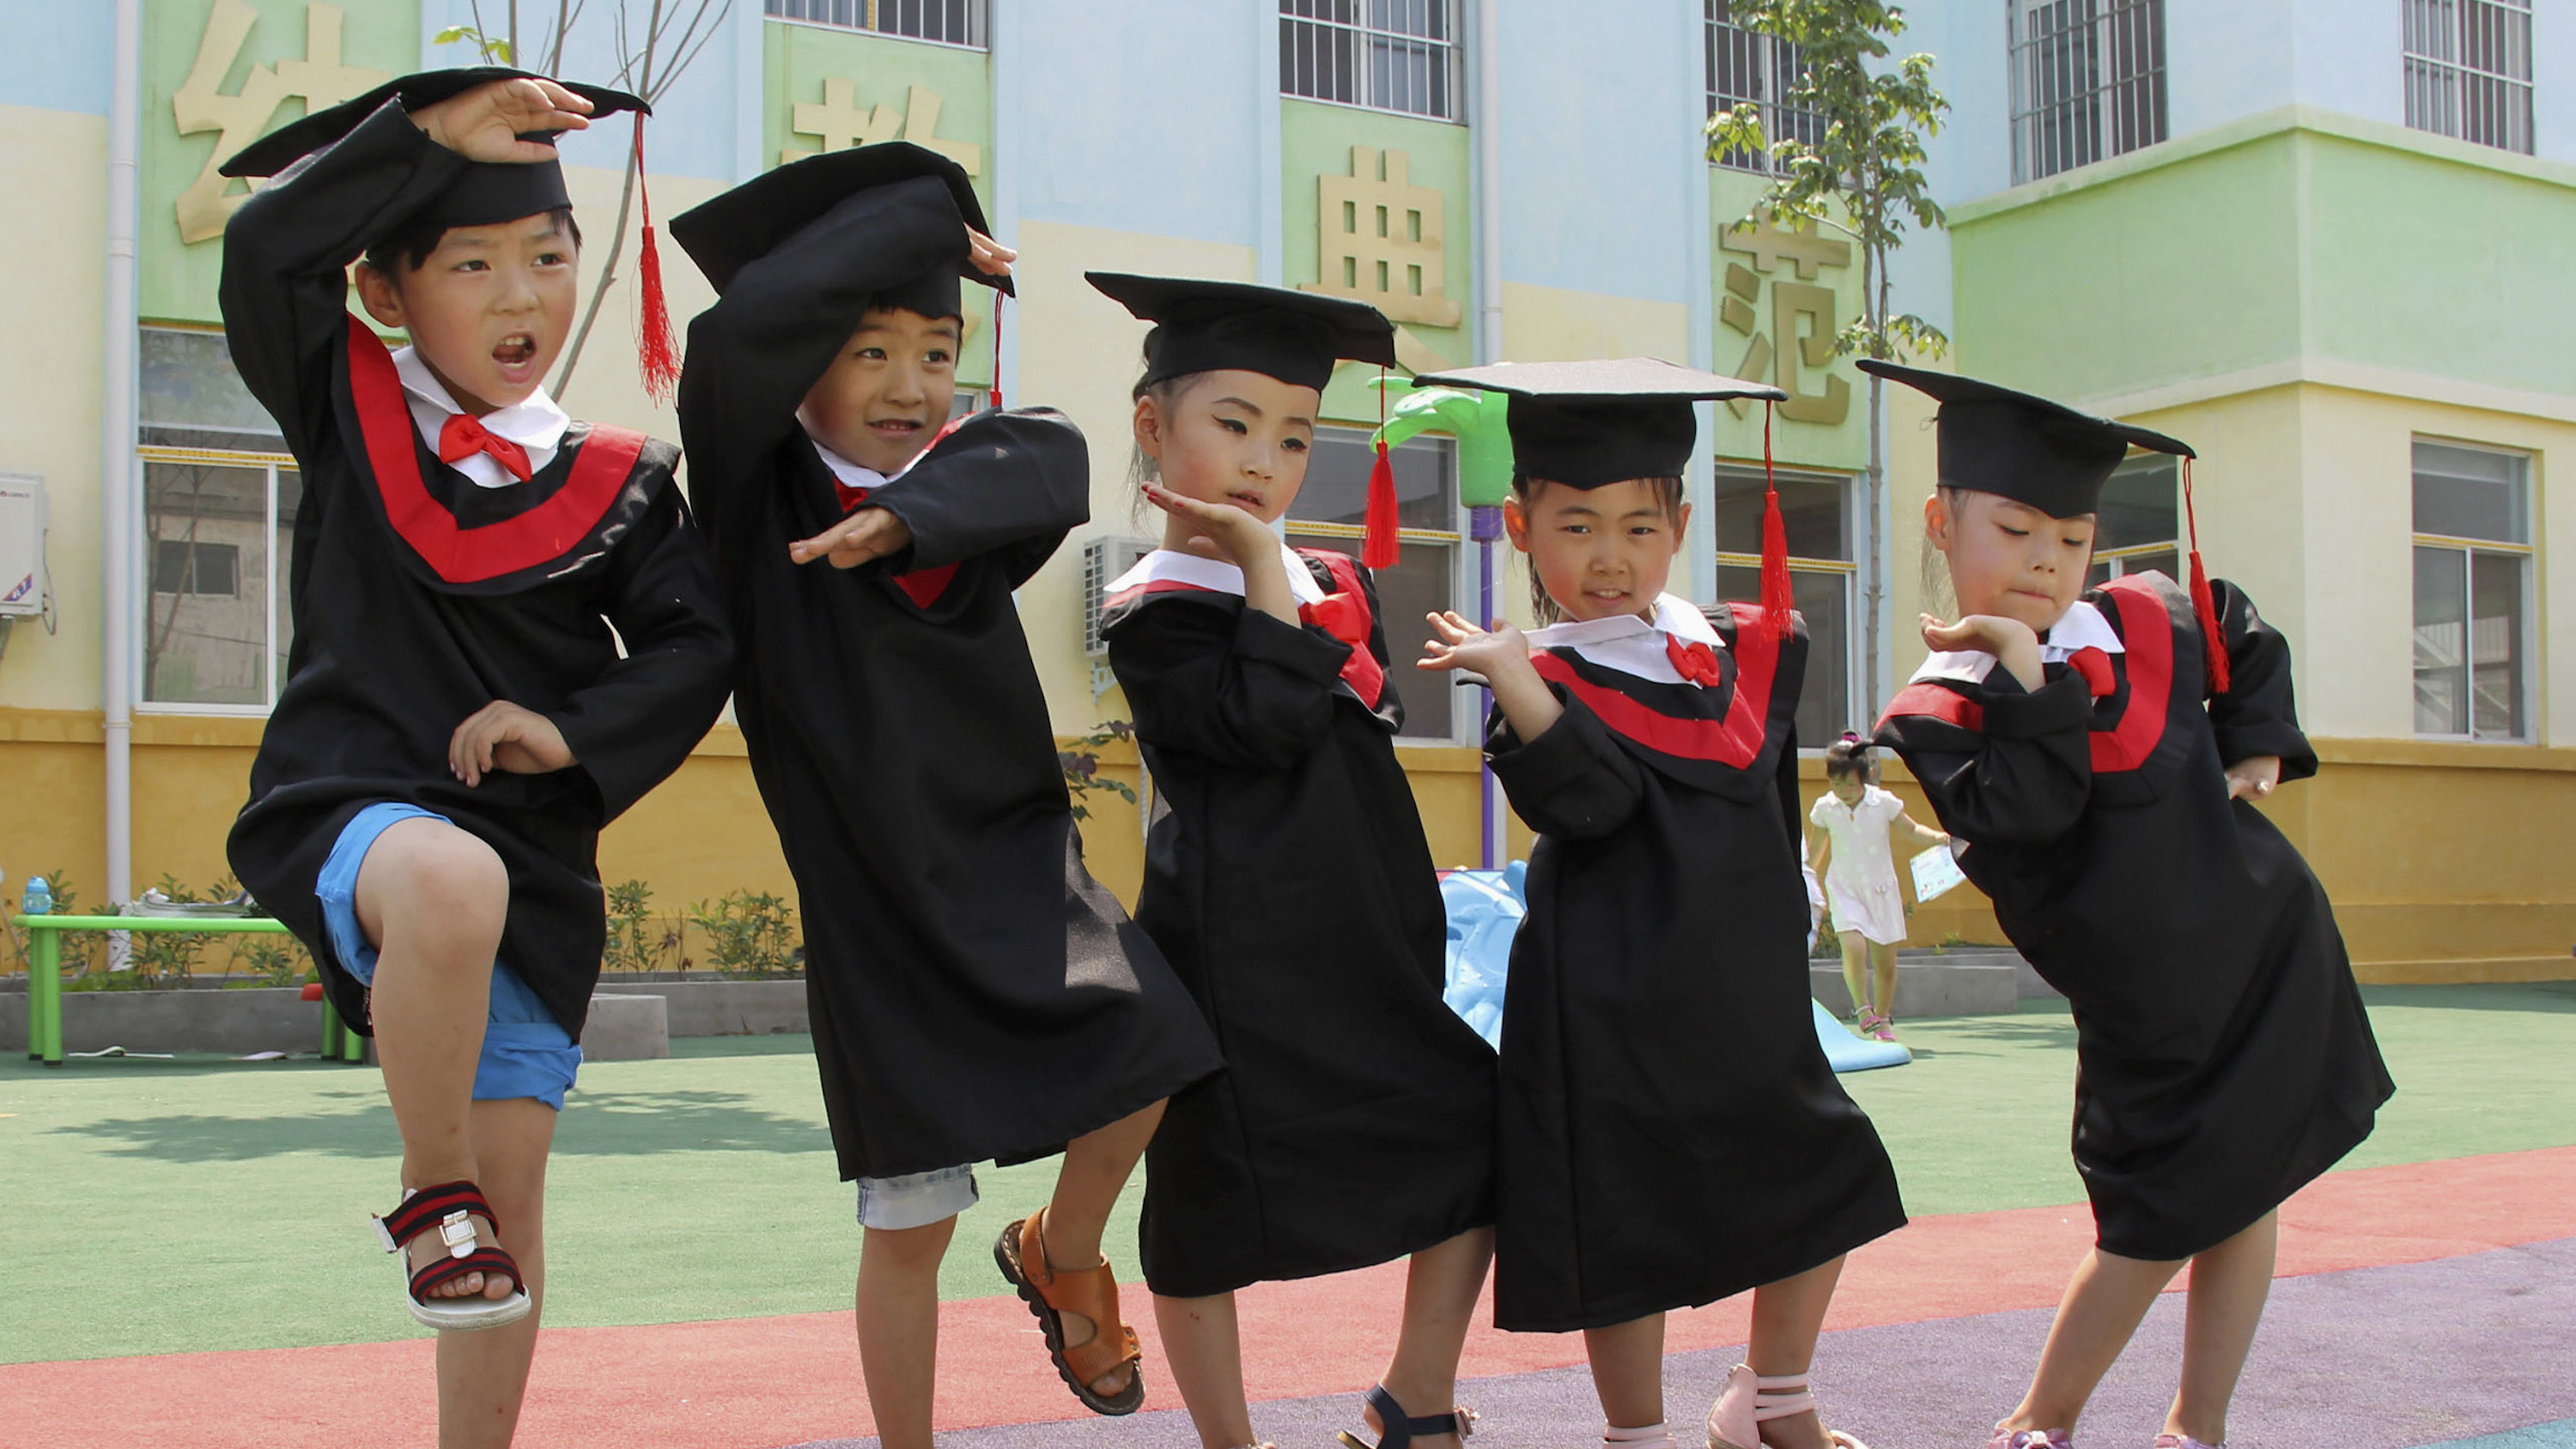 Children in gowns and mortarboards pose for pictures during their kindergarten graduation ceremony.